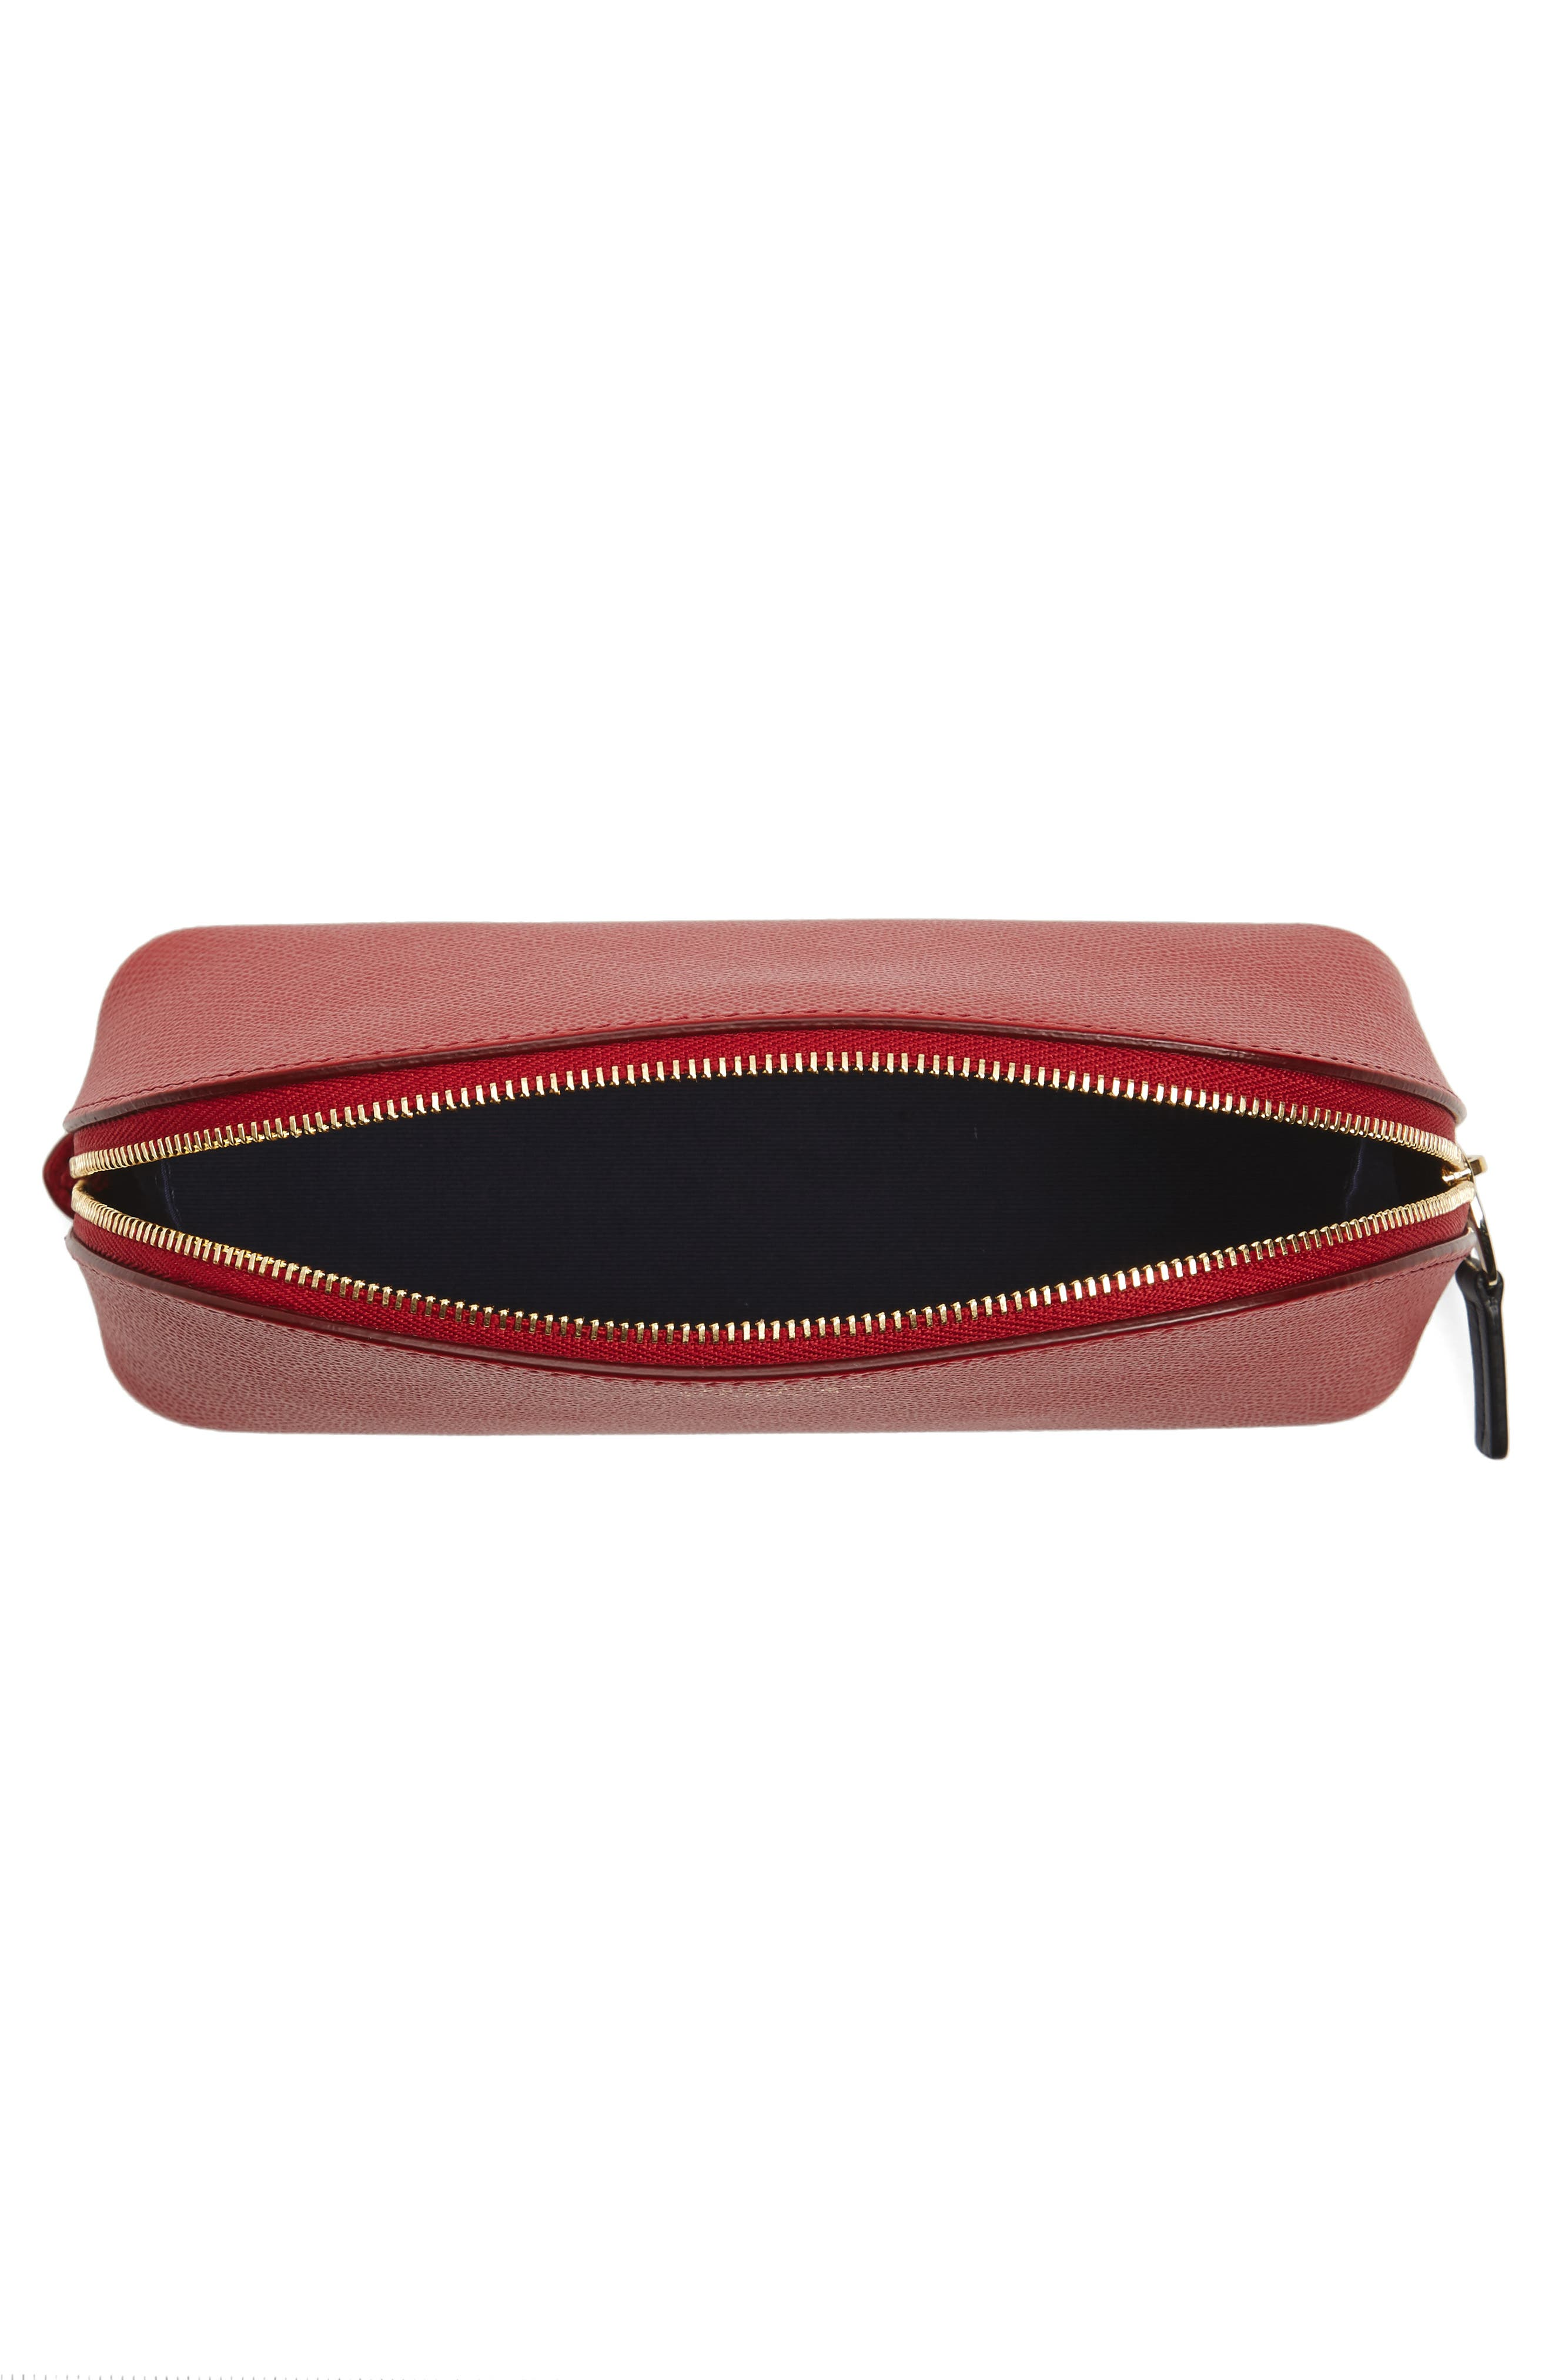 ,                             Small Calfskin Leather Cosmetics Case,                             Alternate thumbnail 4, color,                             600